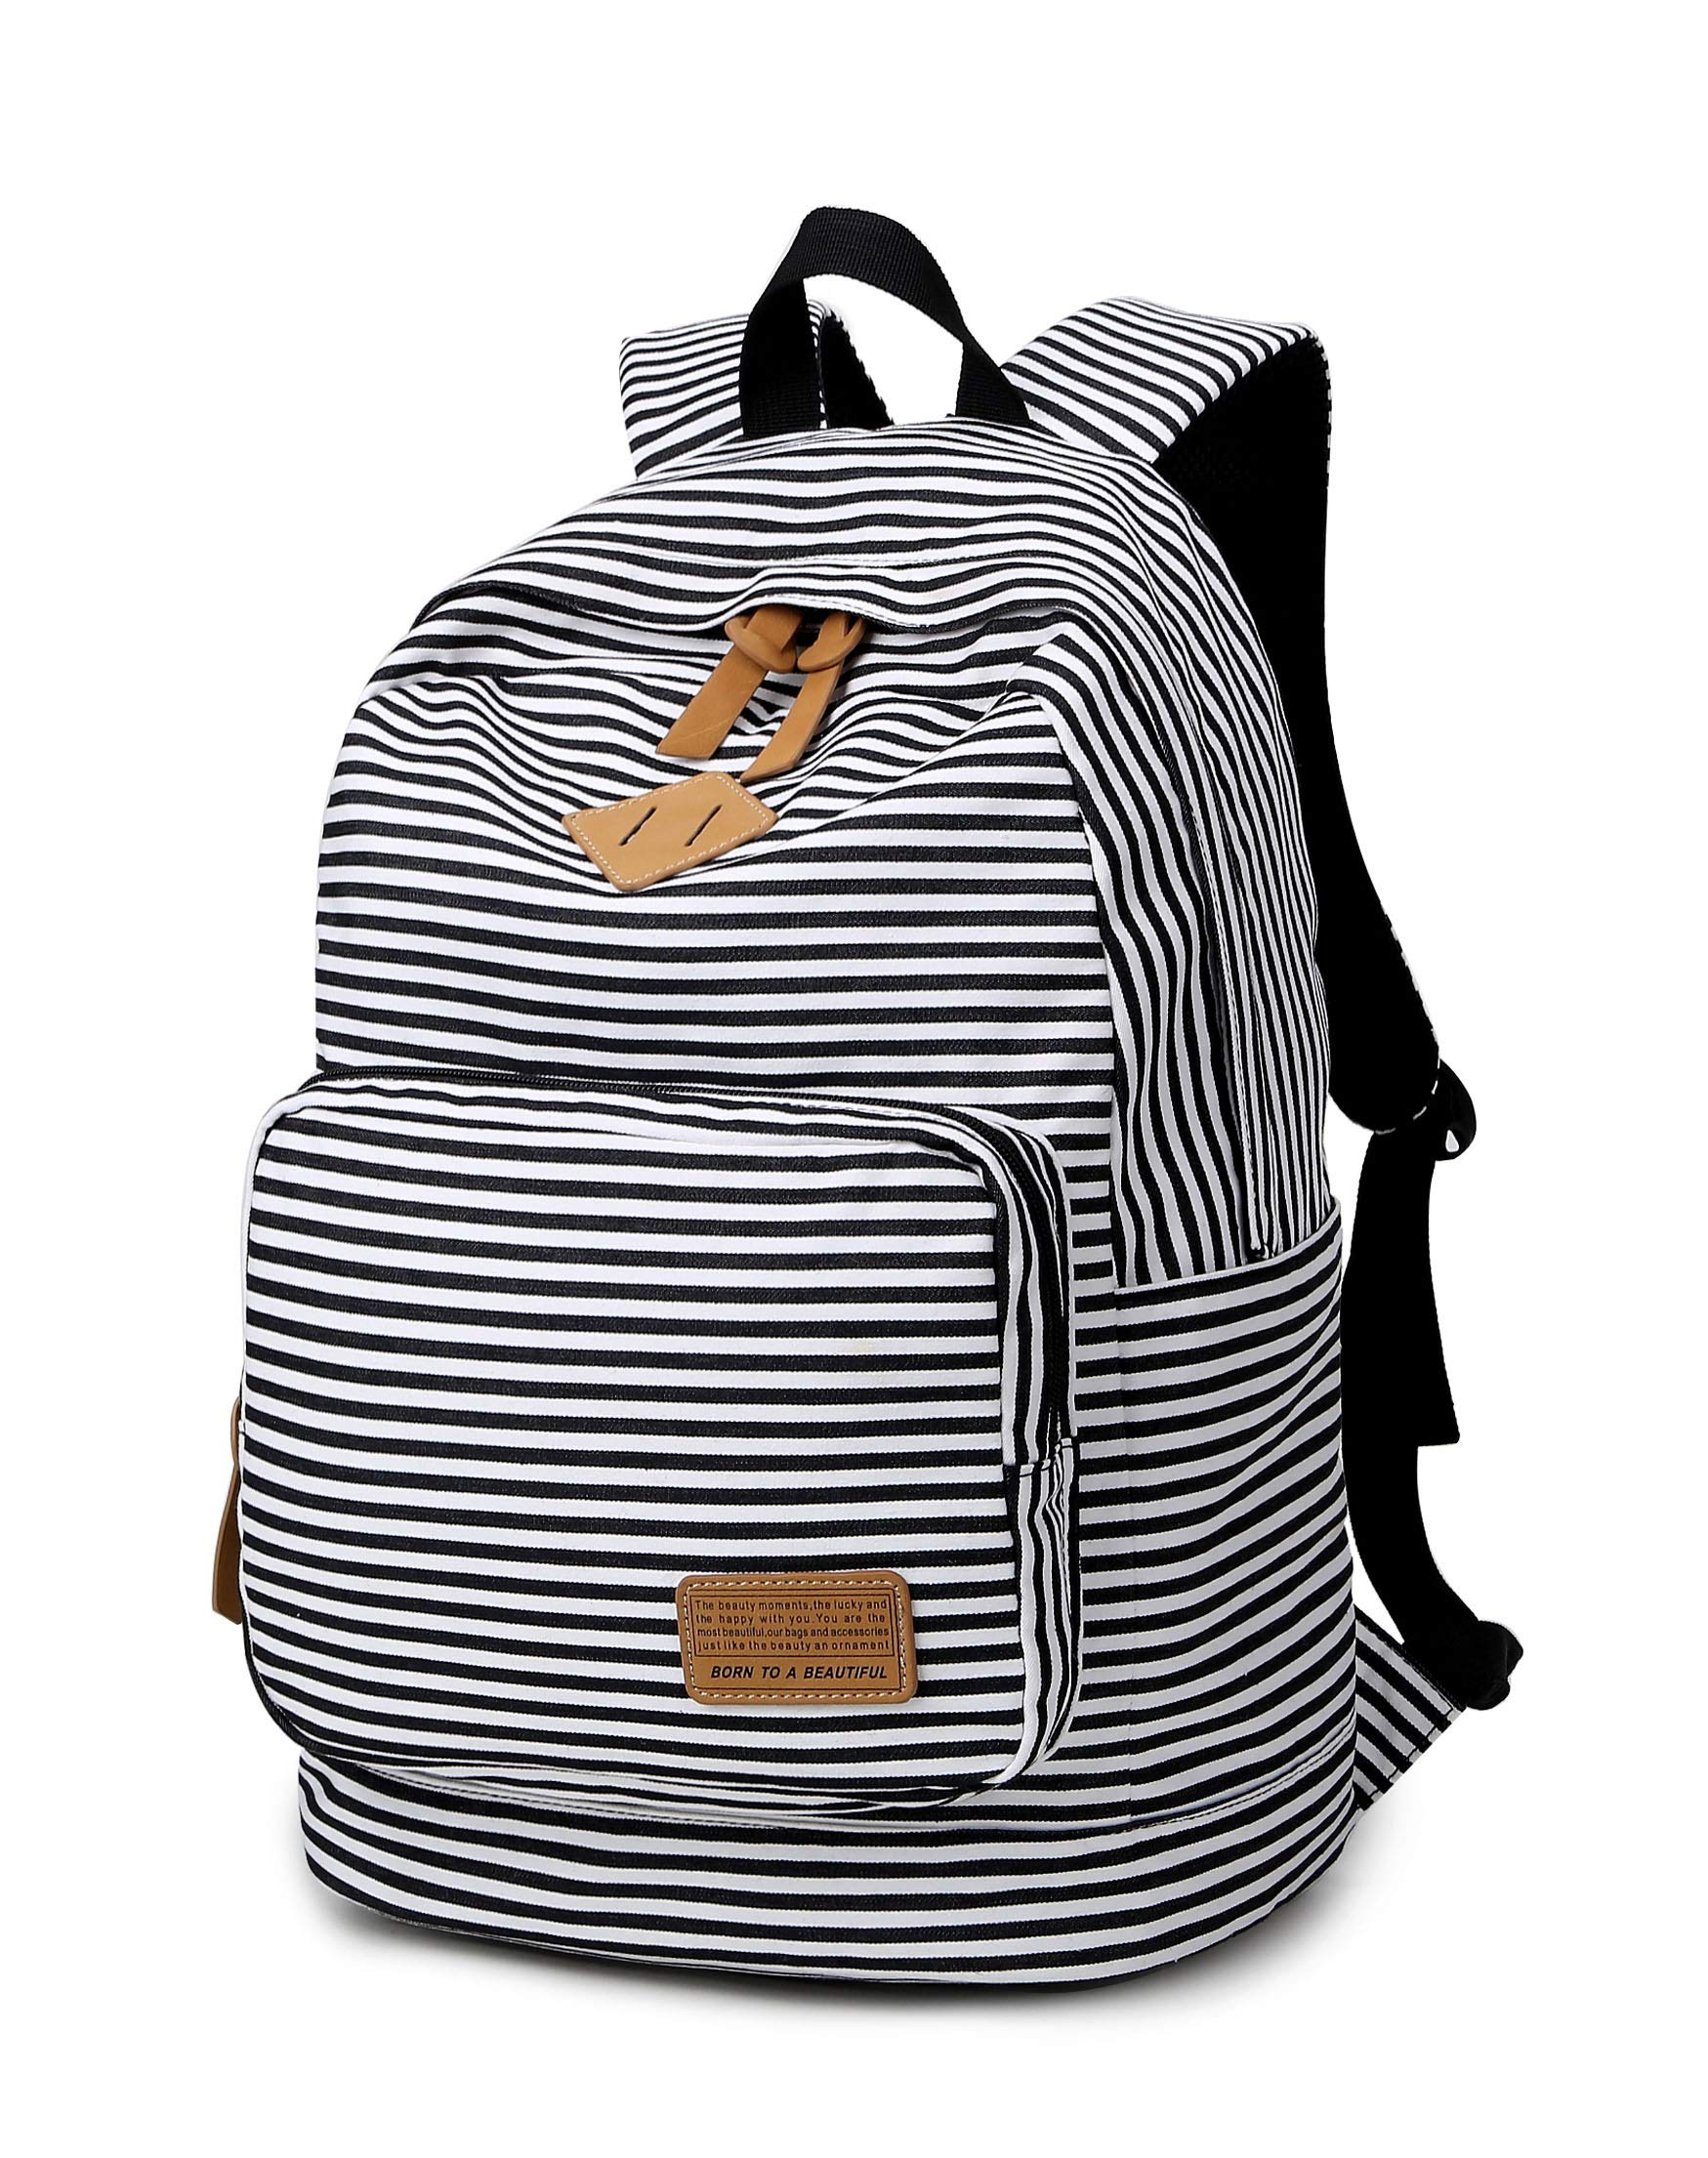 Ahyapiner Striped Canvas Backpack Shoulder Bag Women Casual Travel Daypack Black by Ahyapiner